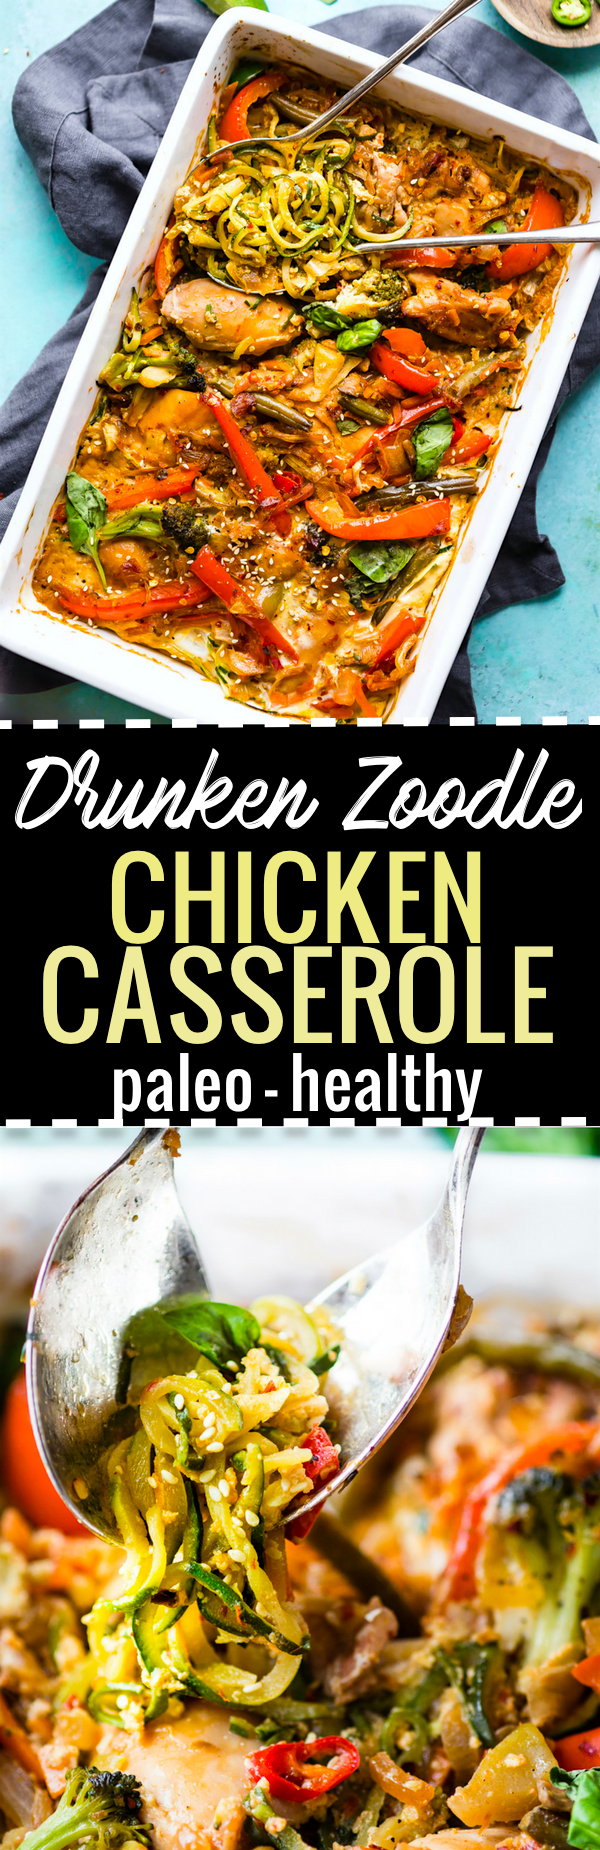 Easy Drunken Zoodle Chicken Casserole is part of Drunken Chicken Zoodle Casserole Paleo Option Cotter Crunch - Paleo friendly Drunken Zoodle Chicken Casserole takes a spin on the original Pad kee mao Asian stir fry and puts in casserole form  Light, healthy!